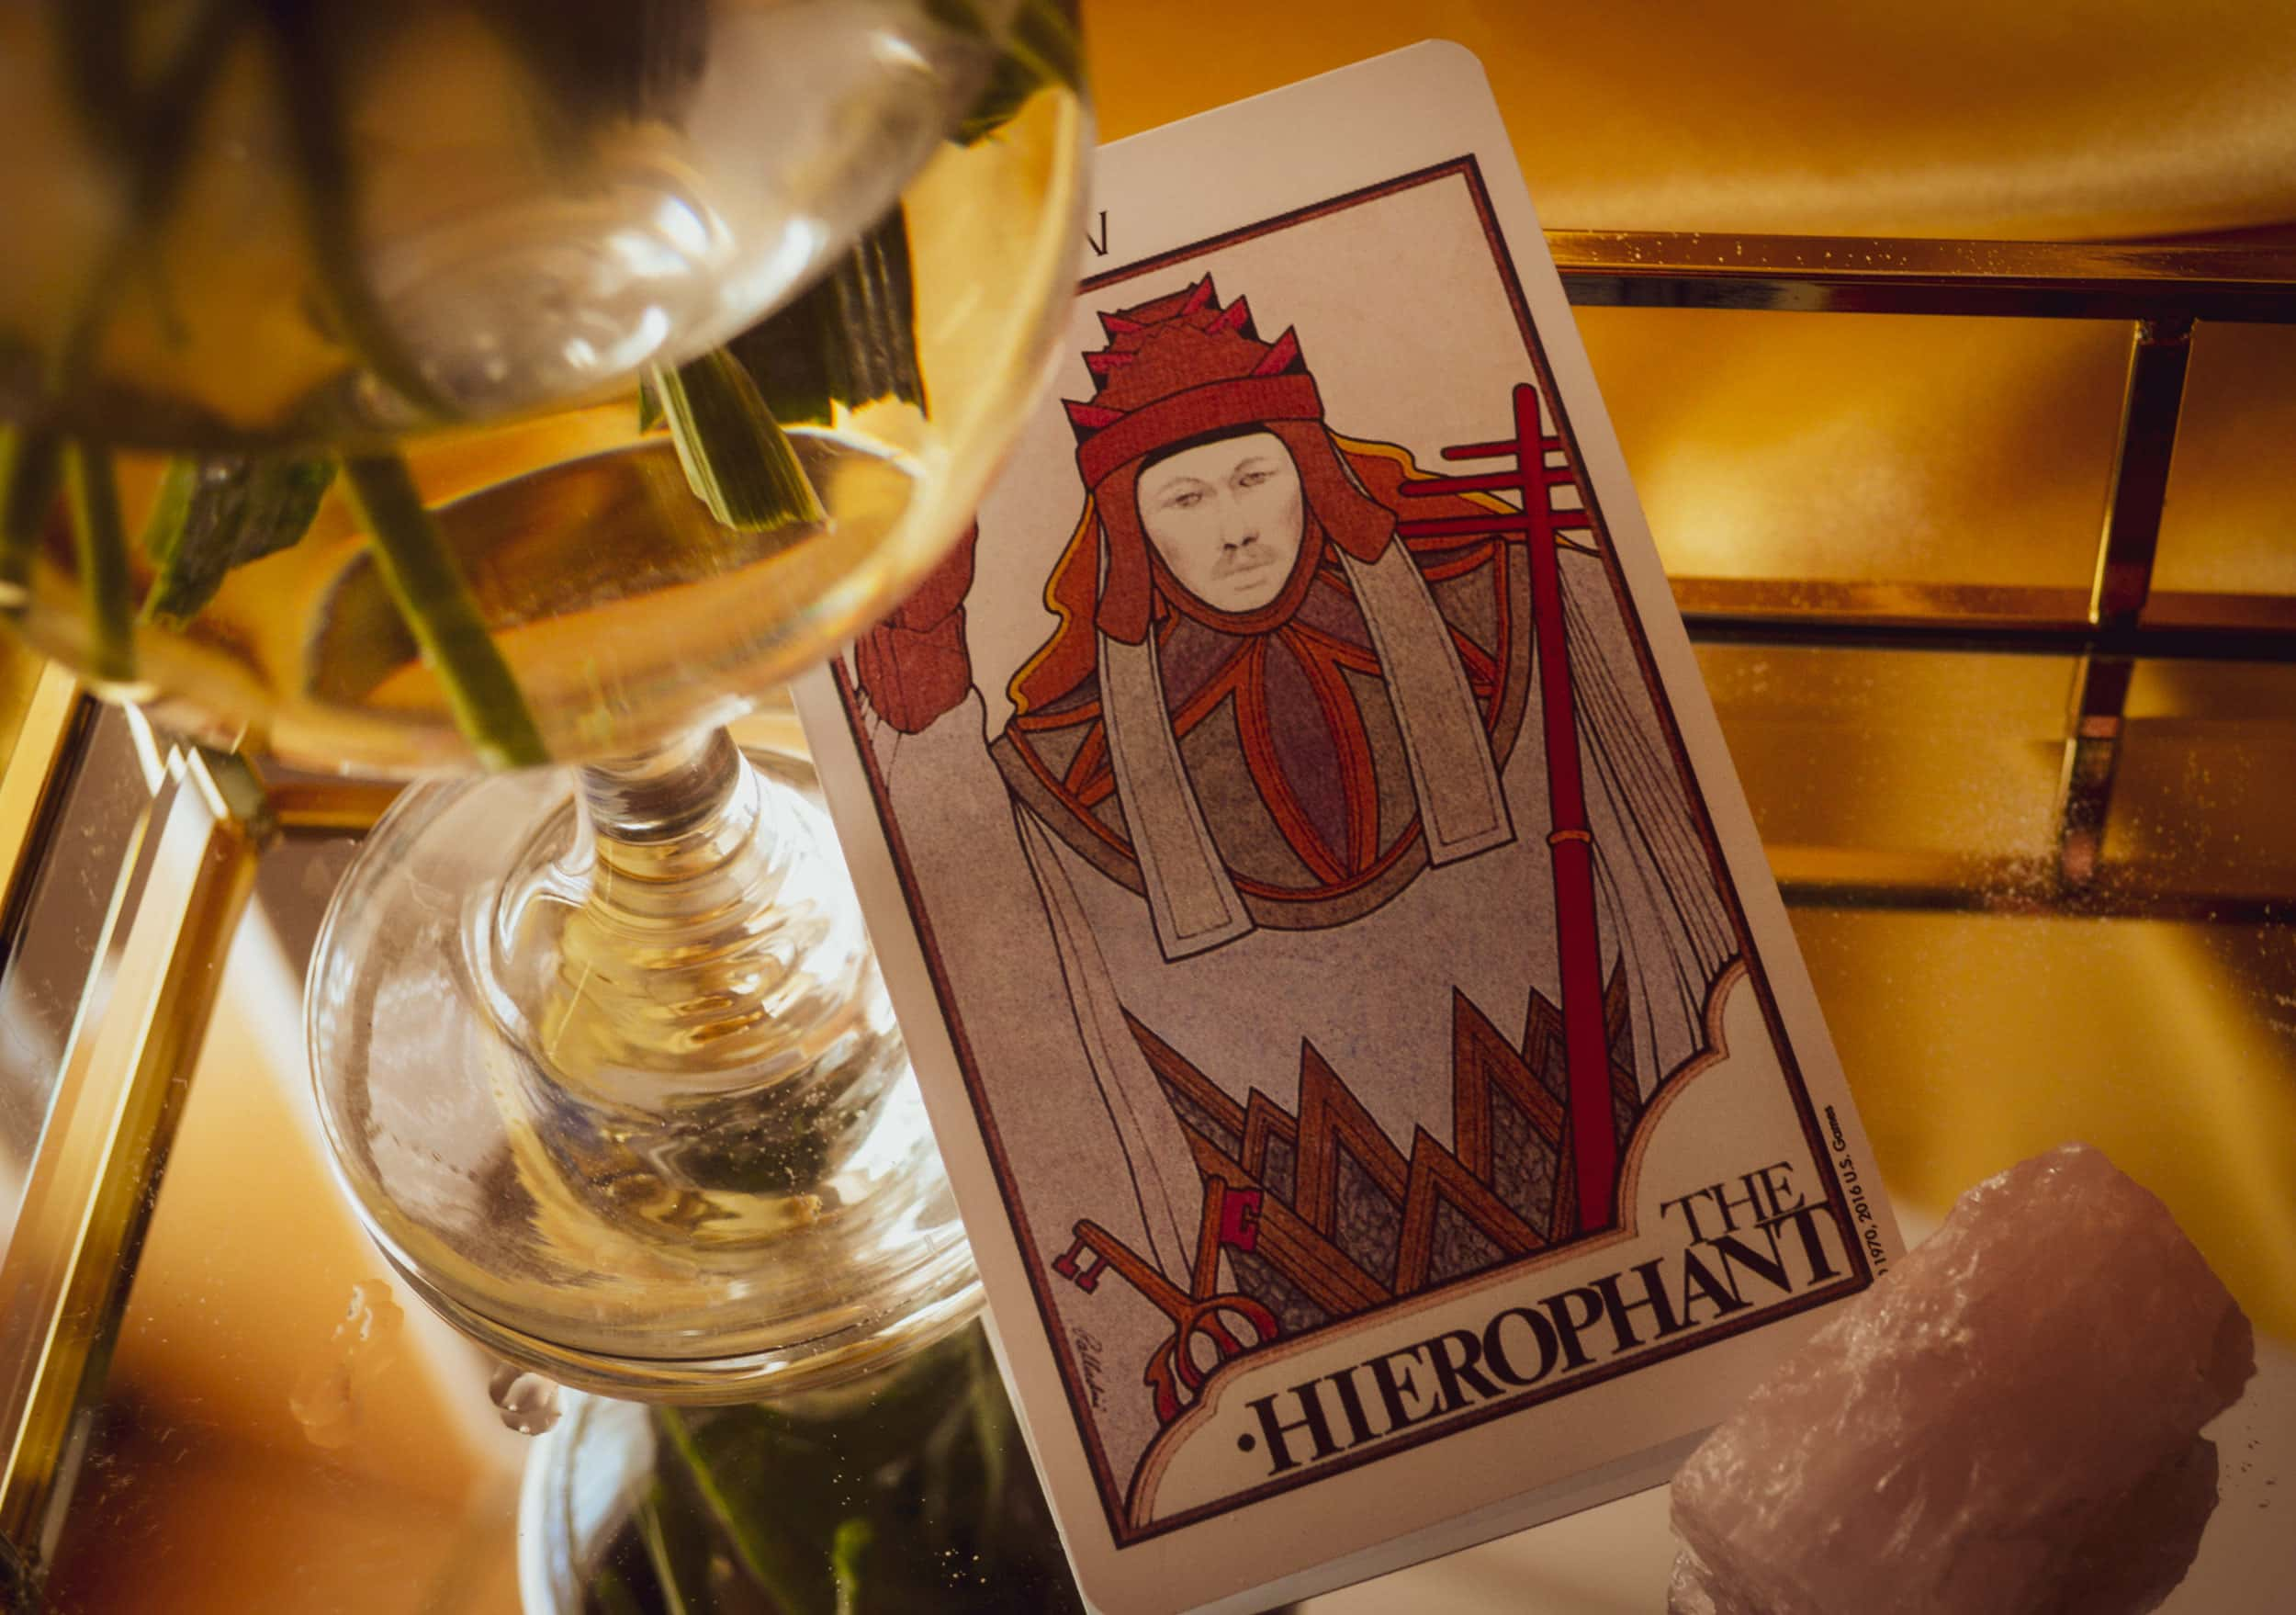 Taurus Power Card: The Hierophant Seek divine wisdom. You will find strength through endurance, persistence, and inspiration. From the Aquarian Tarot by David Palladini.